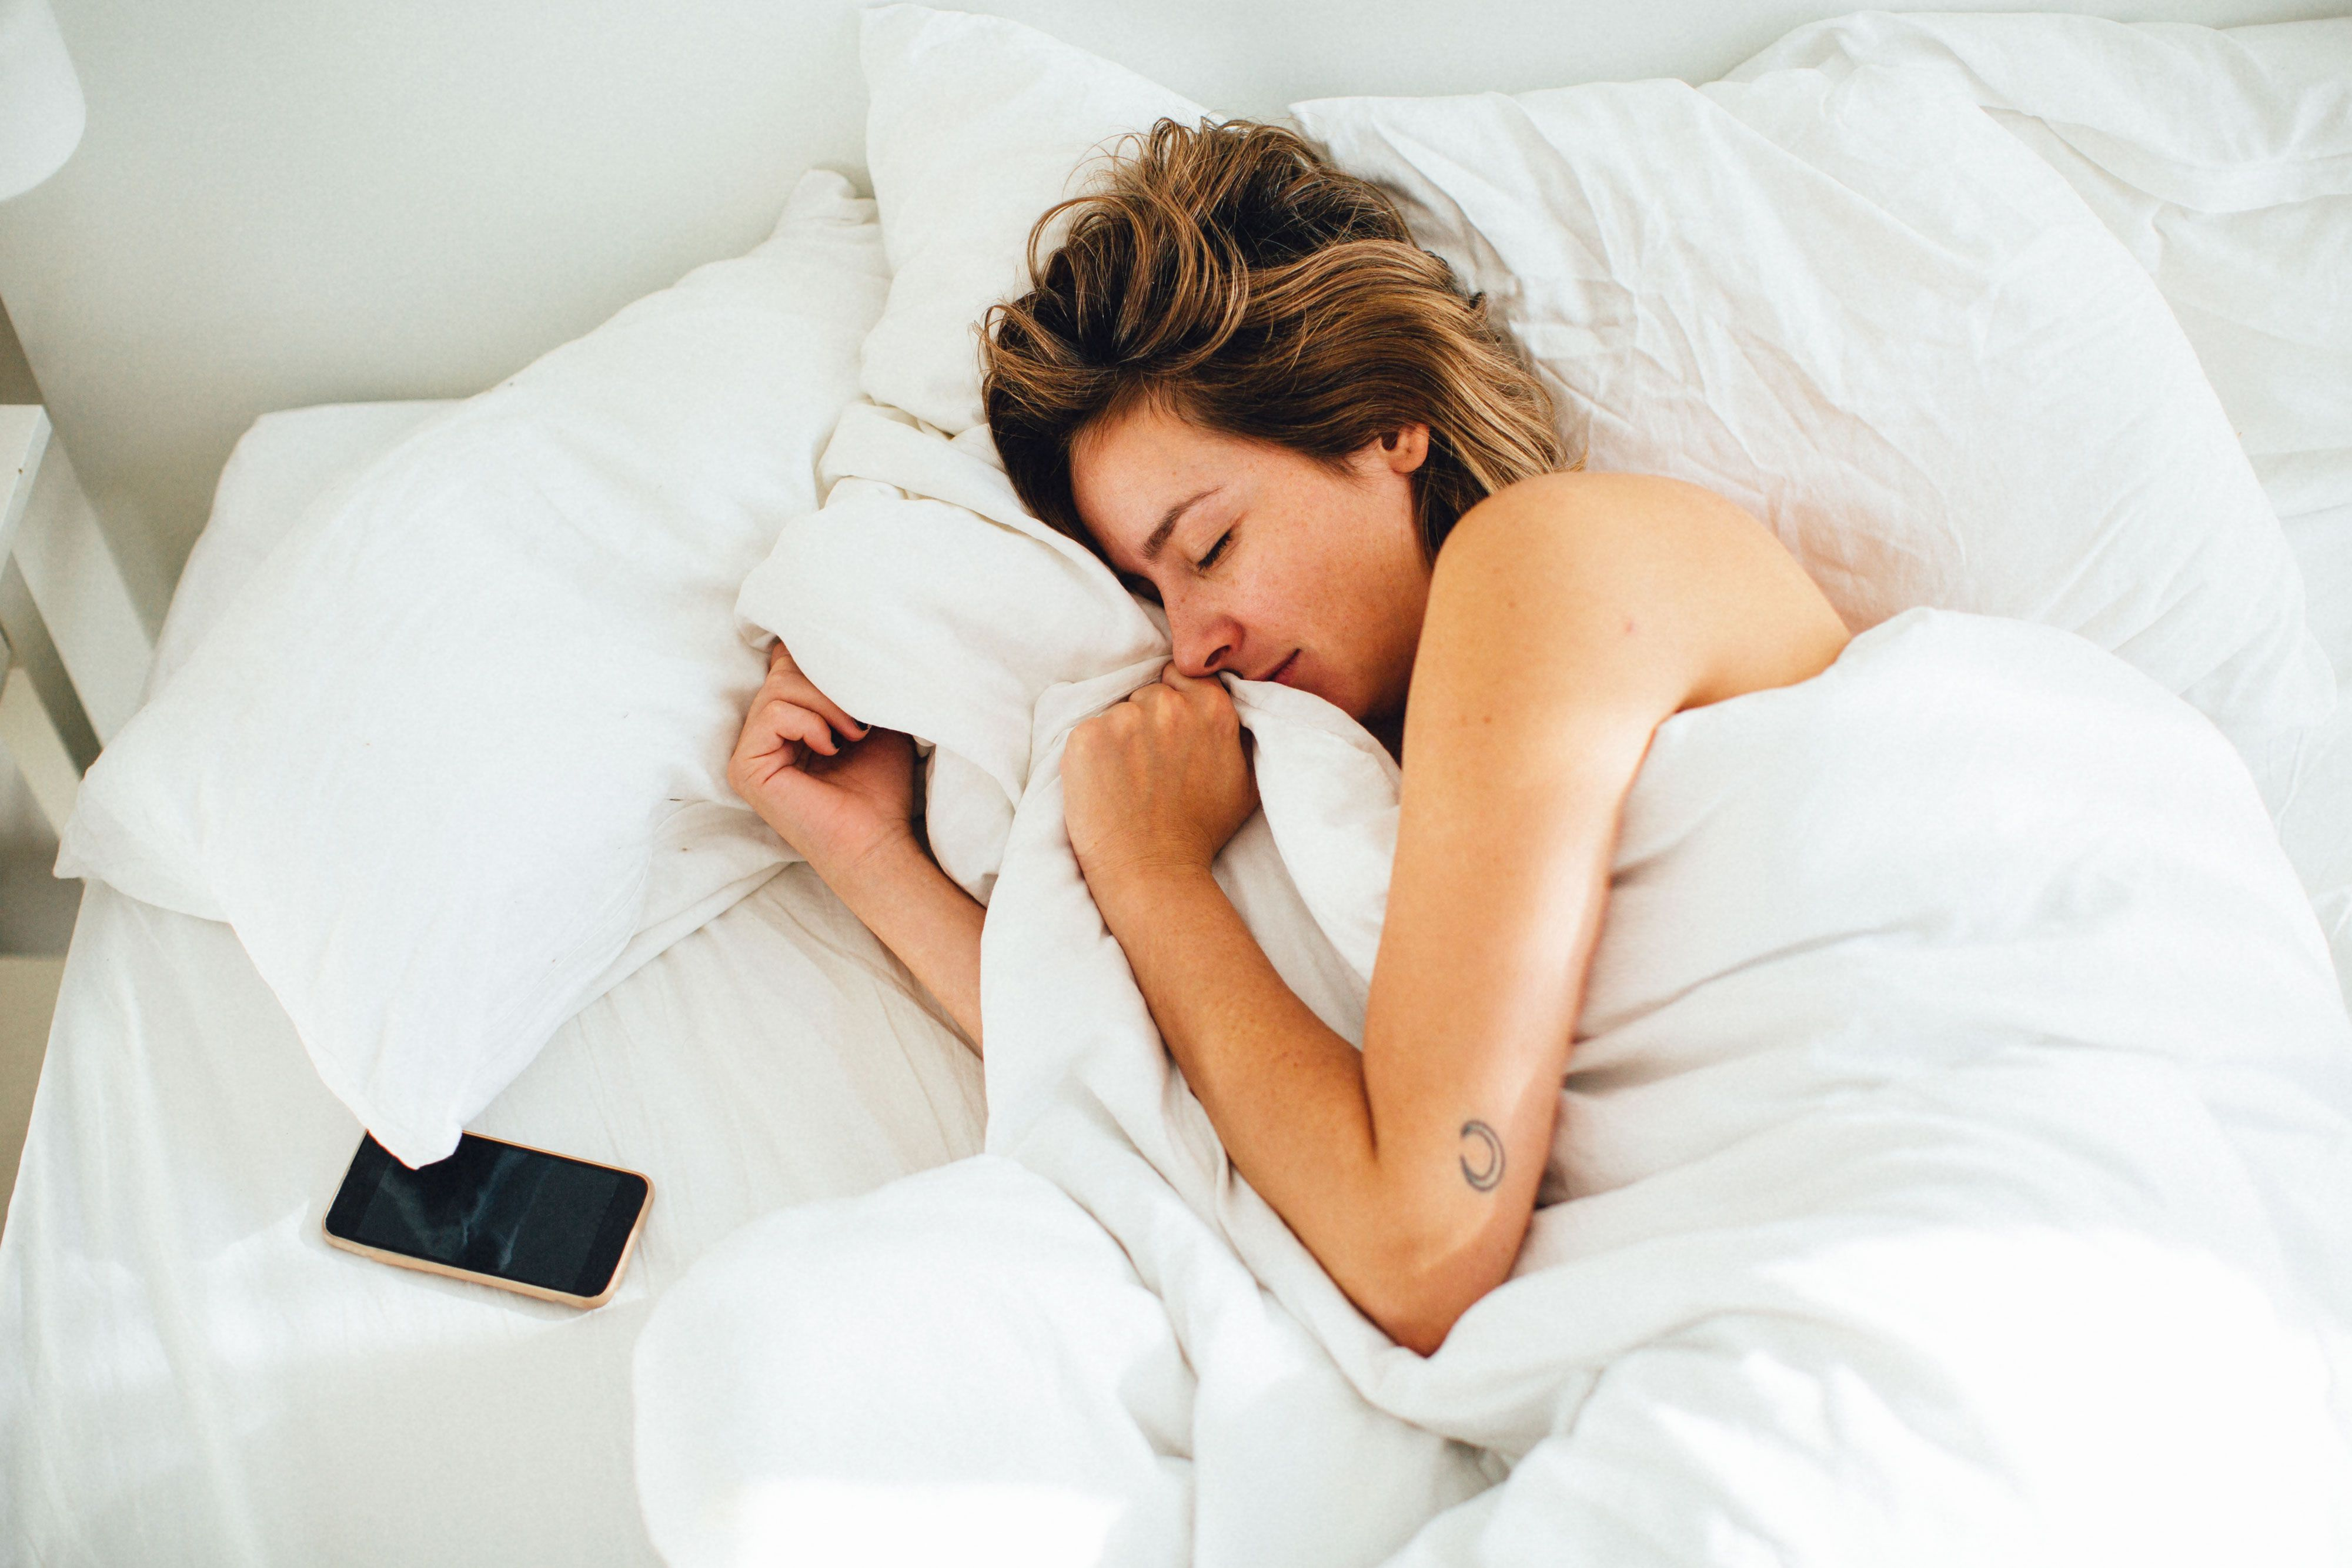 10 Best Sleep Apps Of 2020 For iPhone And Android